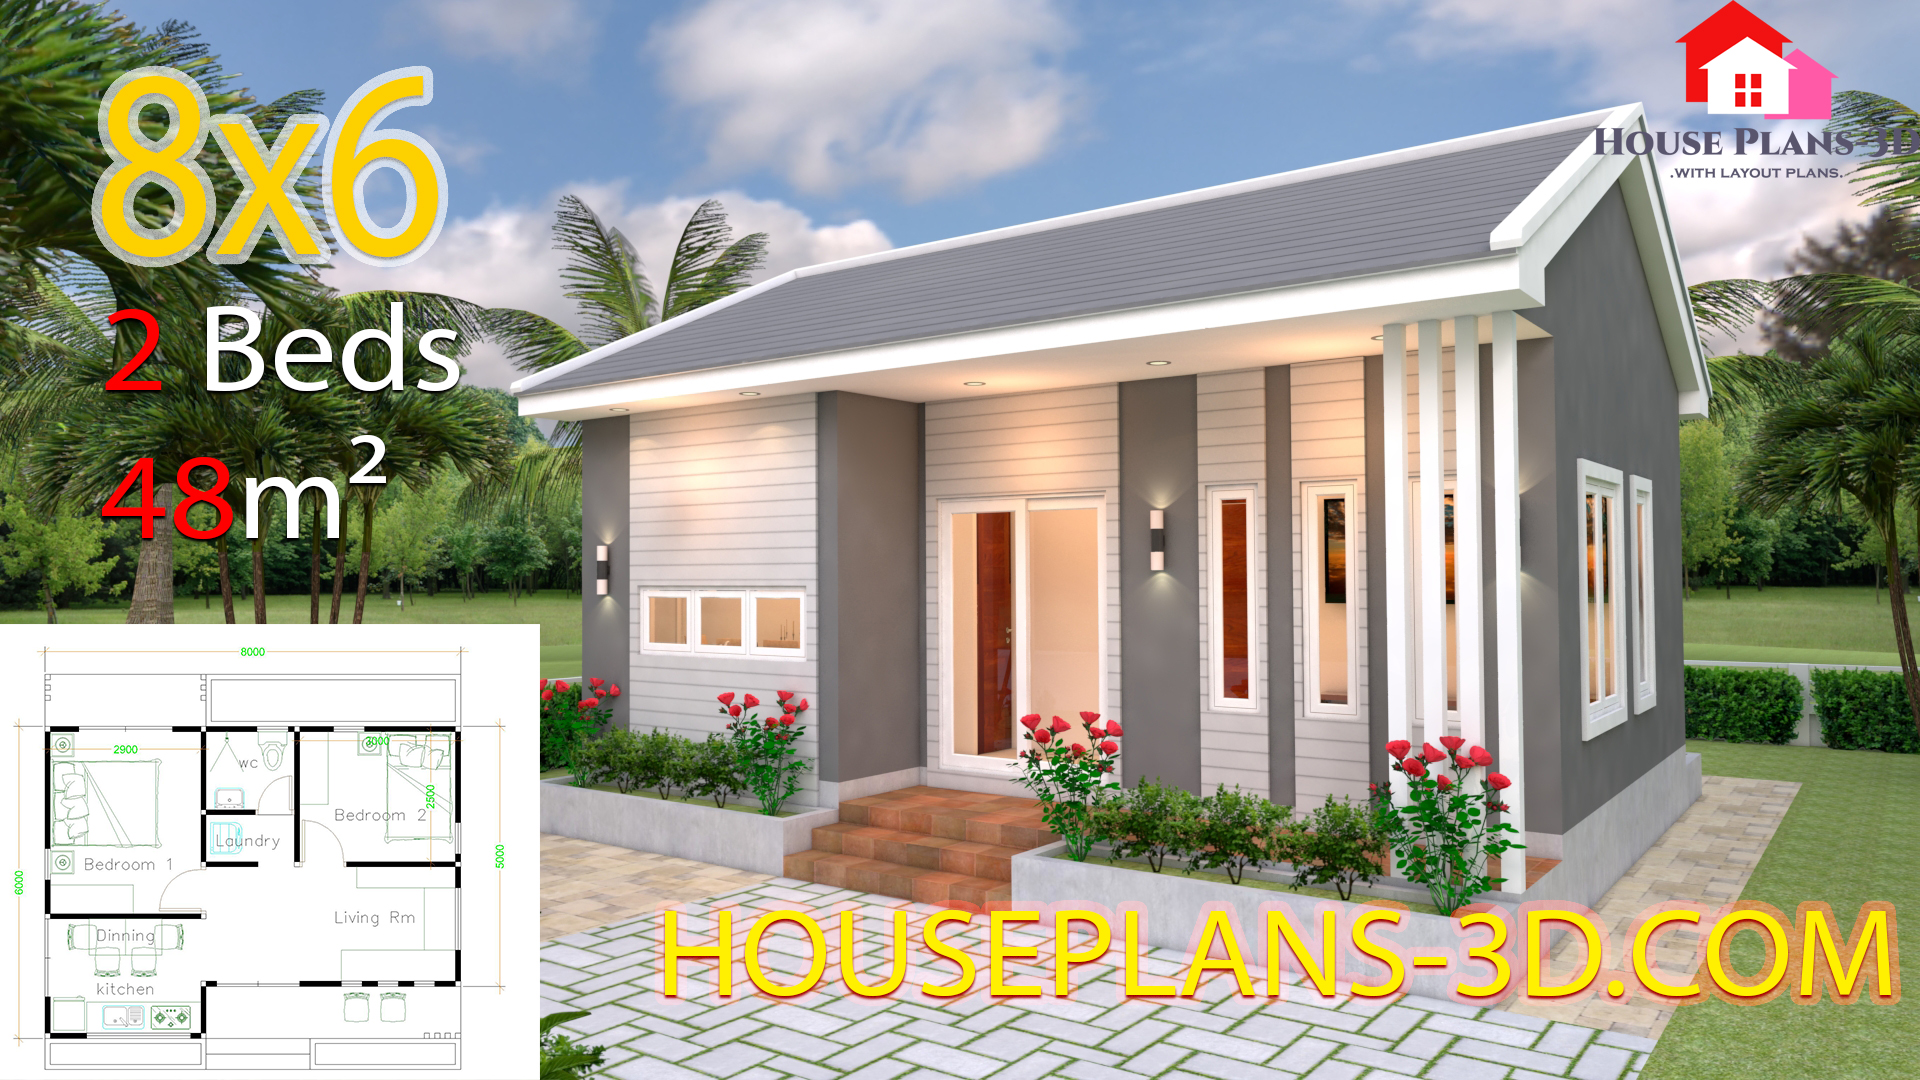 House Design Plans 8x6 with 2 Bedrooms - House Plans 3D